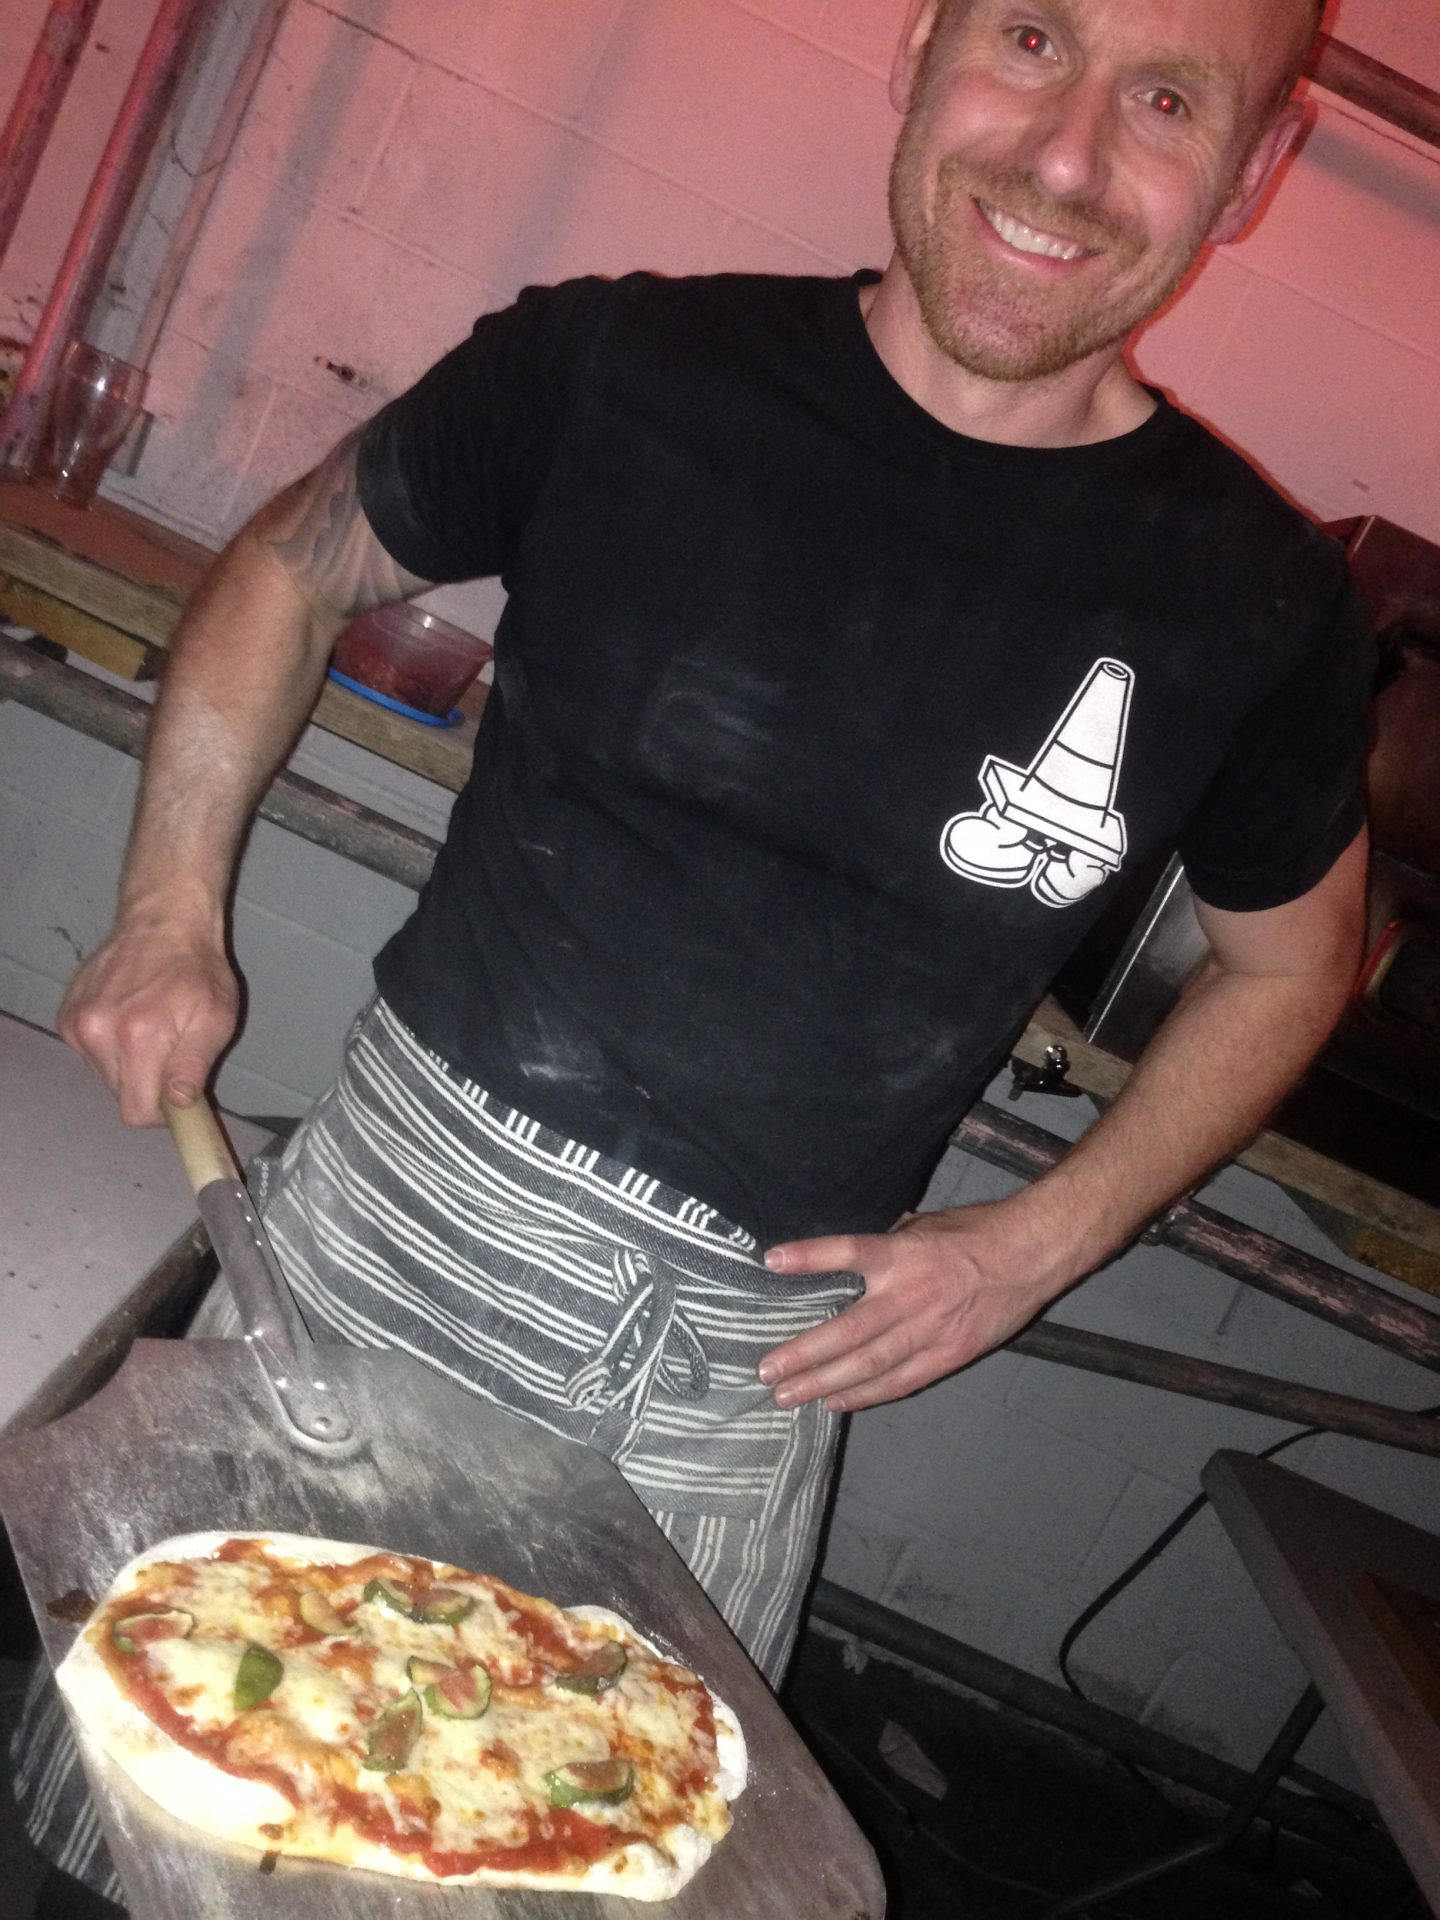 Kev with his freshly cooked pizza!